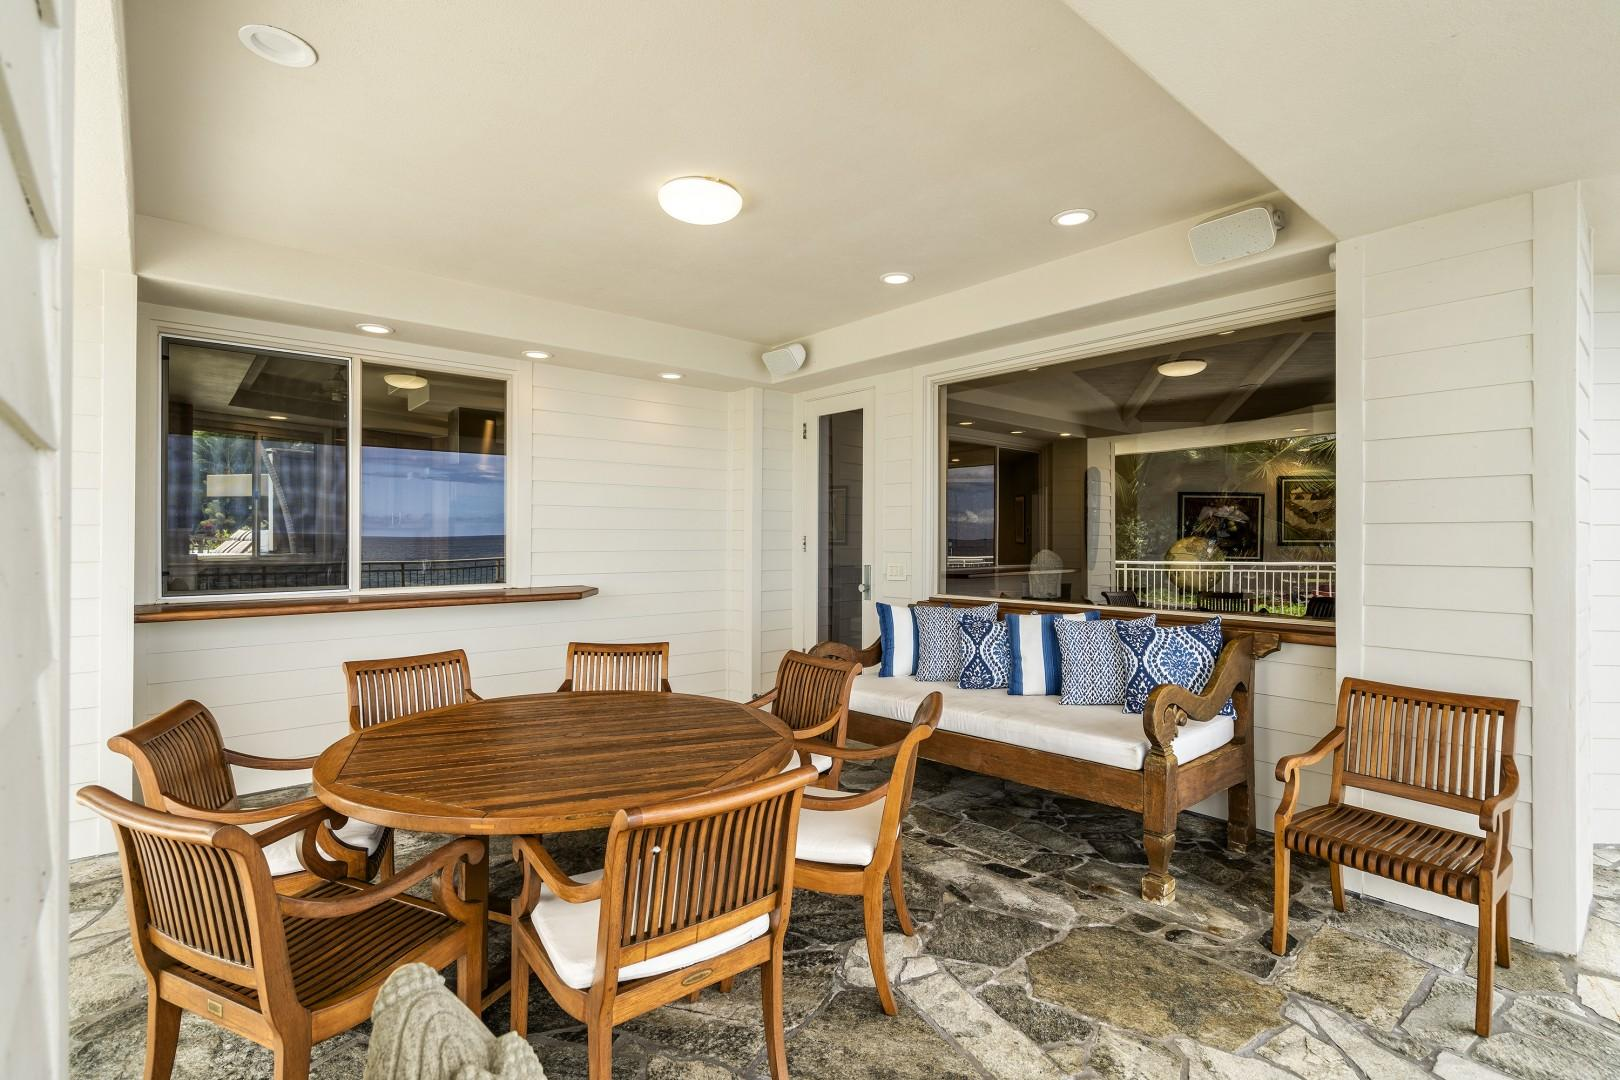 Outdoor dining and lounge style seating!